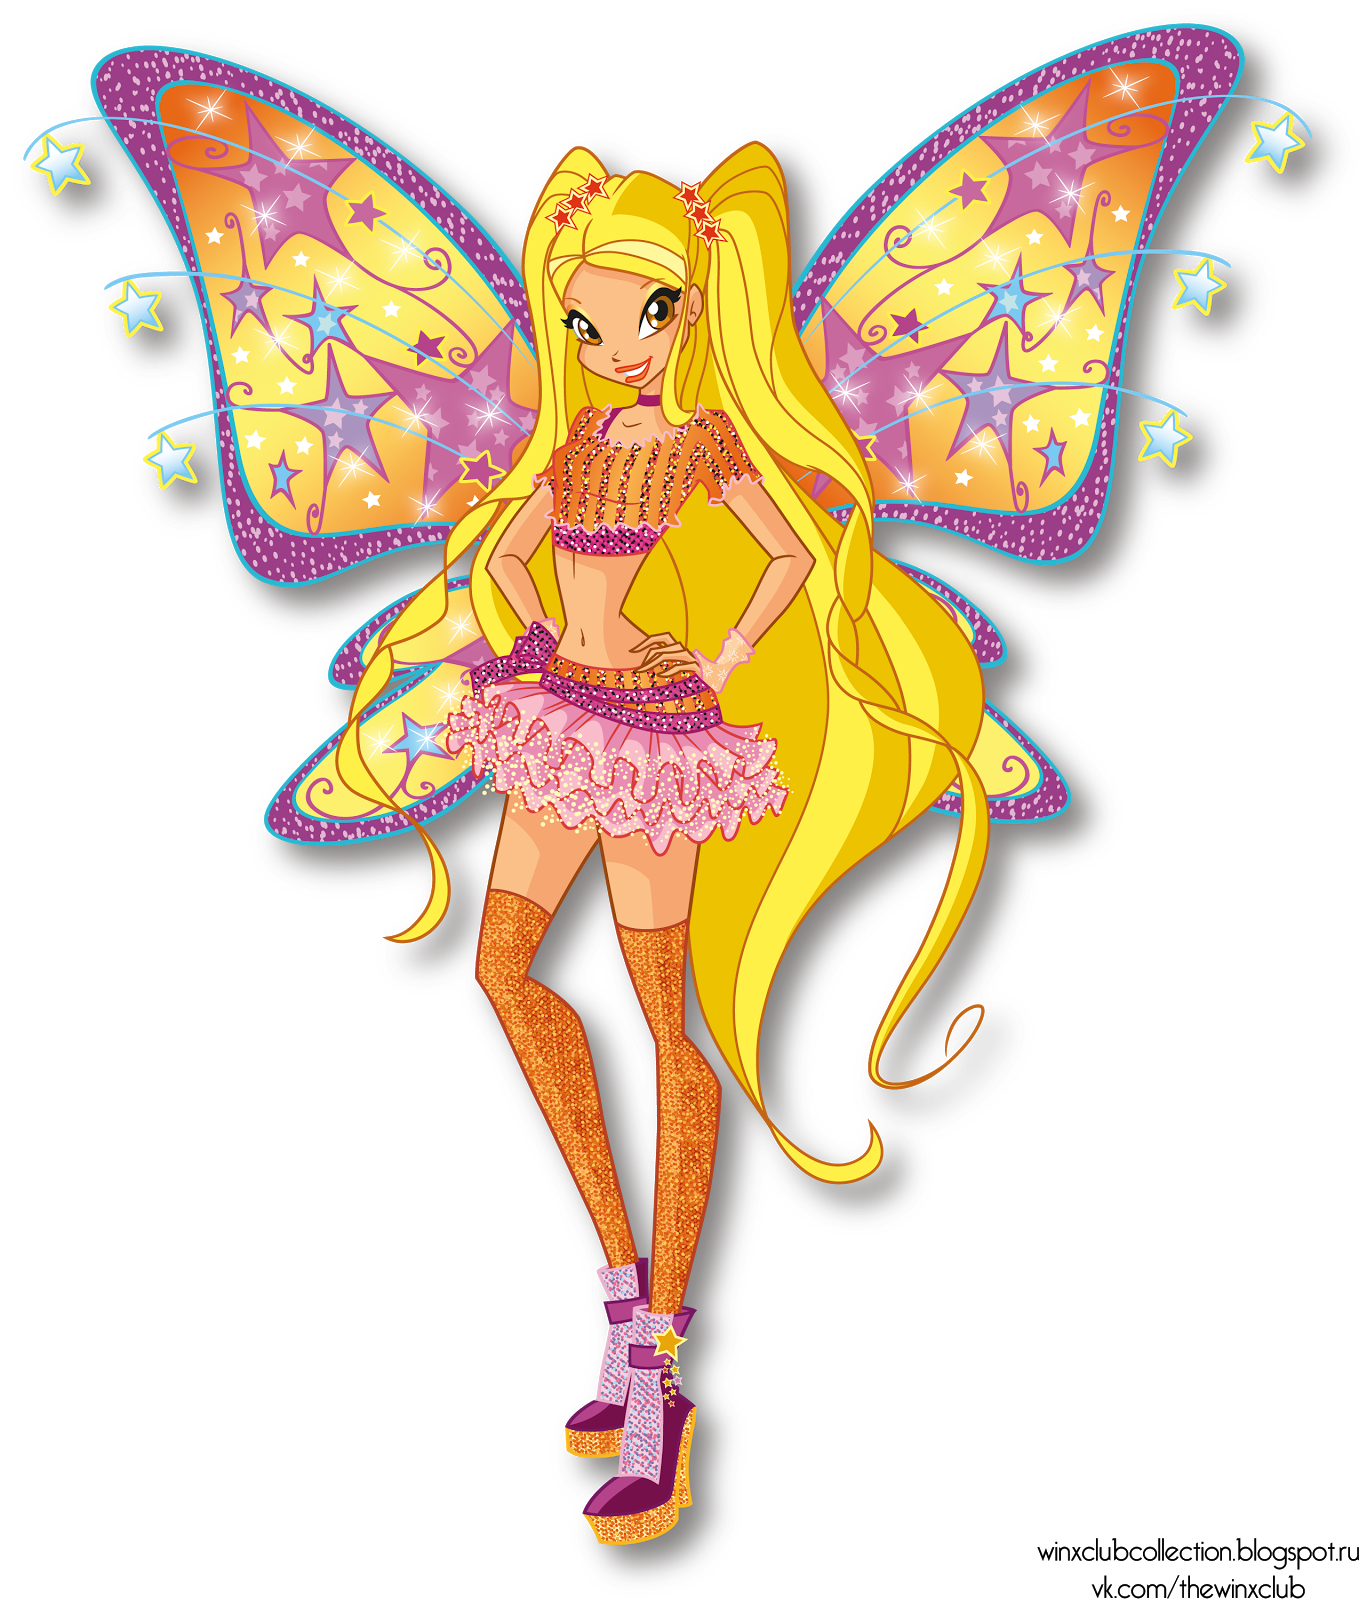 1367 x 1600 png 1588kB, Winx club believix stella Colouring Pages